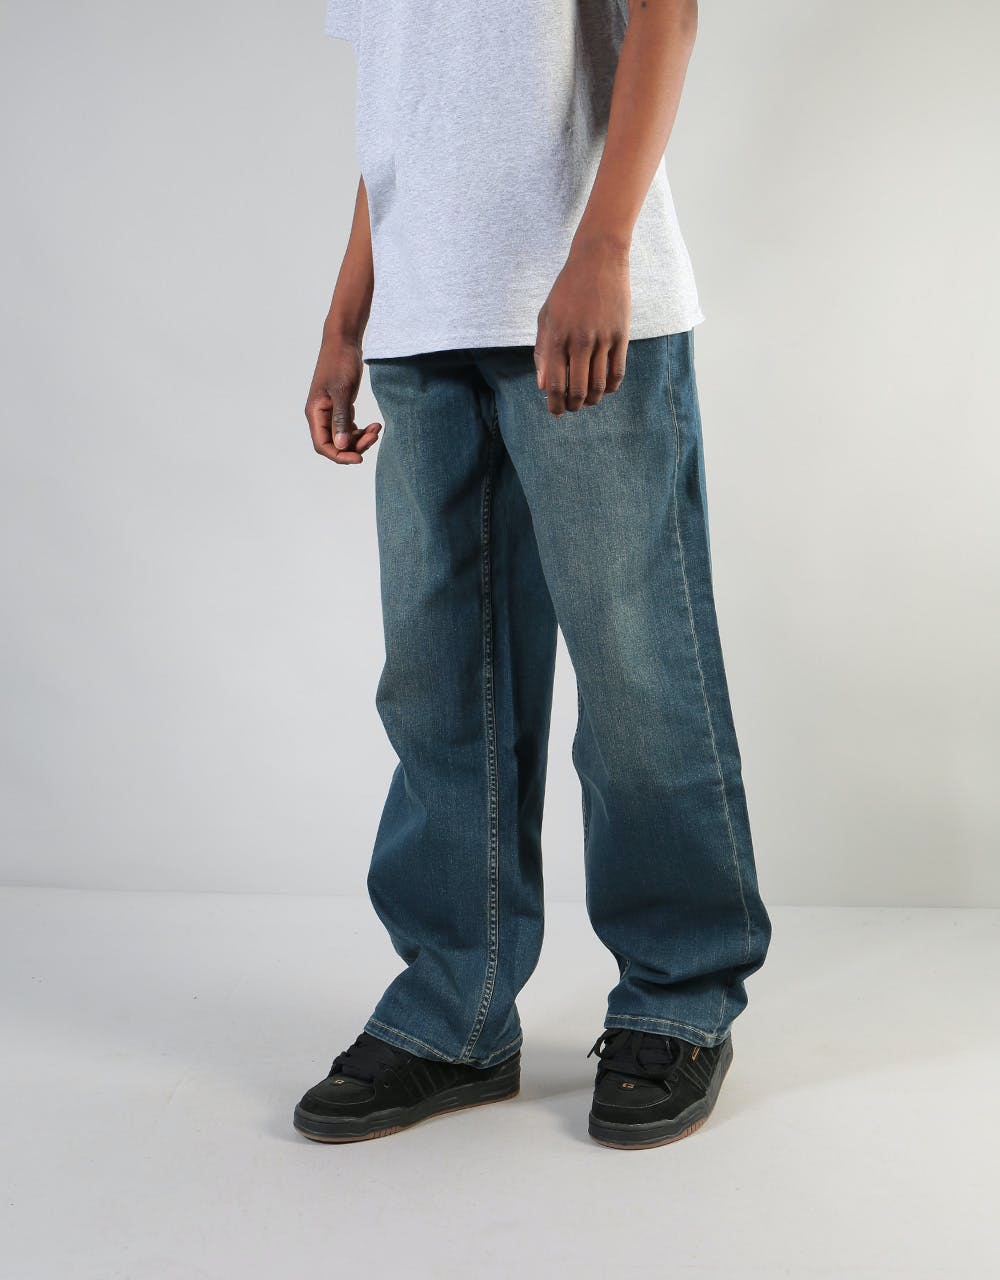 Baggy-Clothing. Top 10 Outdated Fashion and Clothing Trends to Avoid in 2021